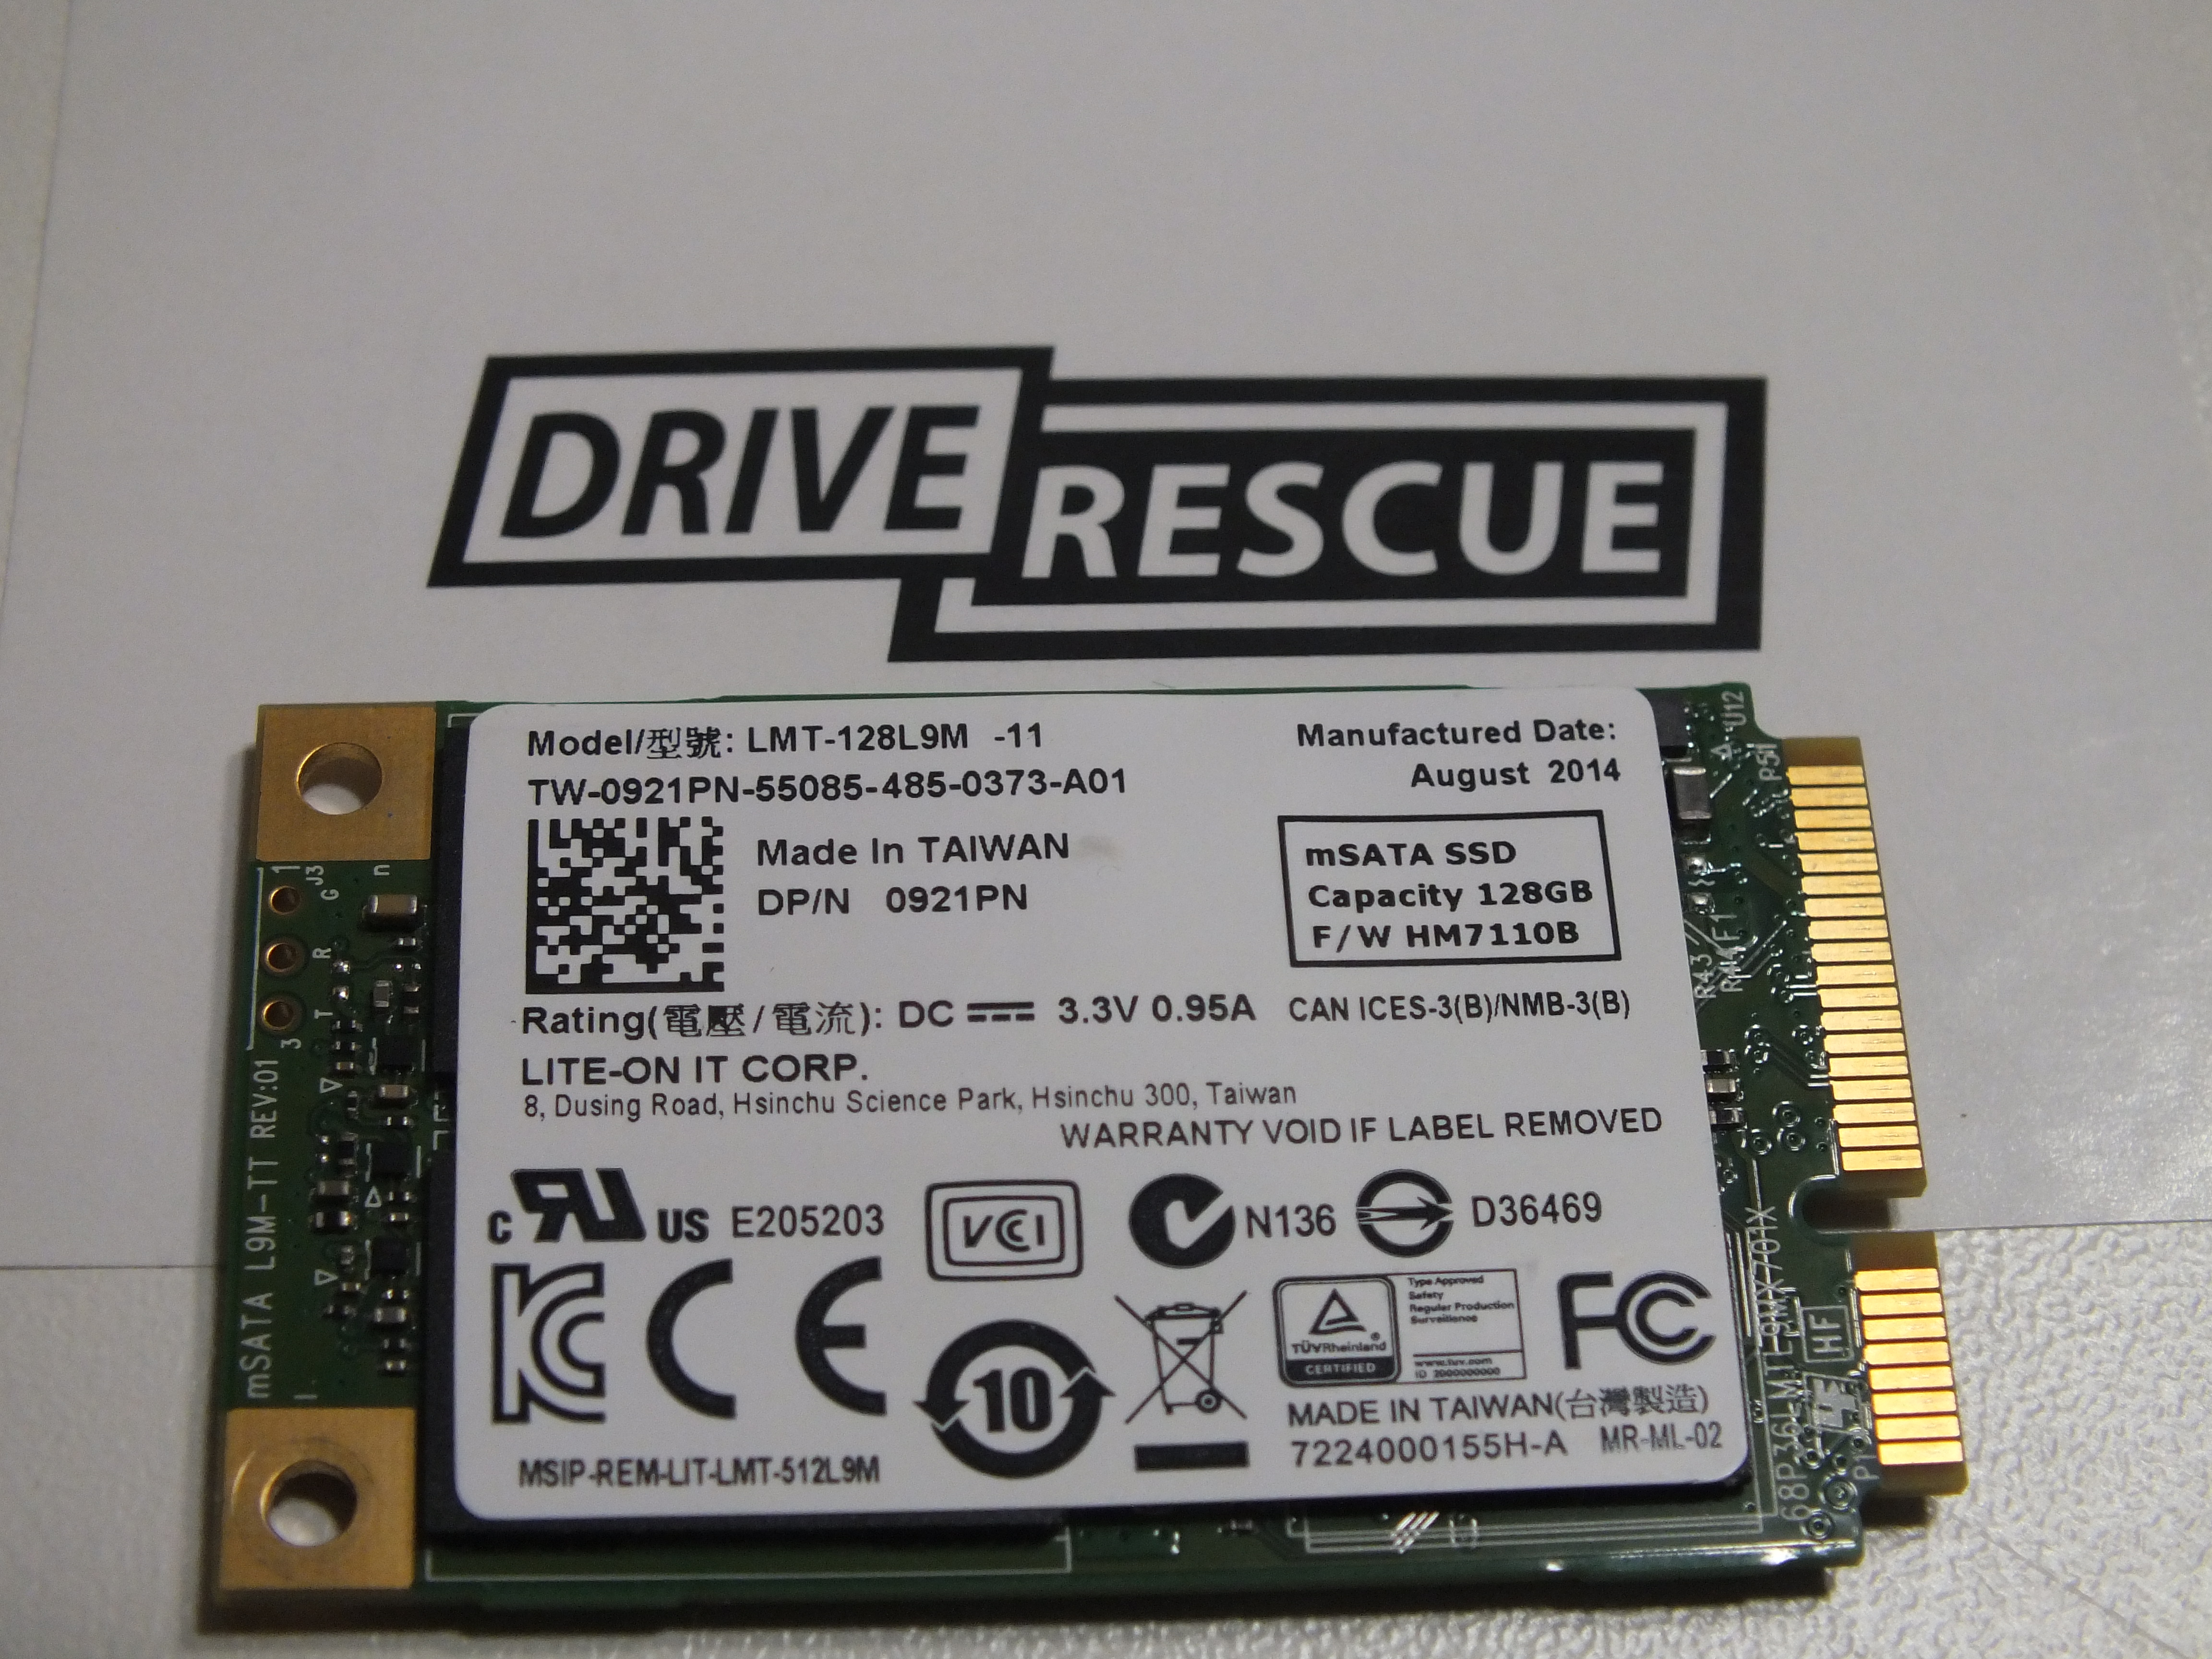 Data recovery from 128gb Lite-On IT mSata SSD from Dell